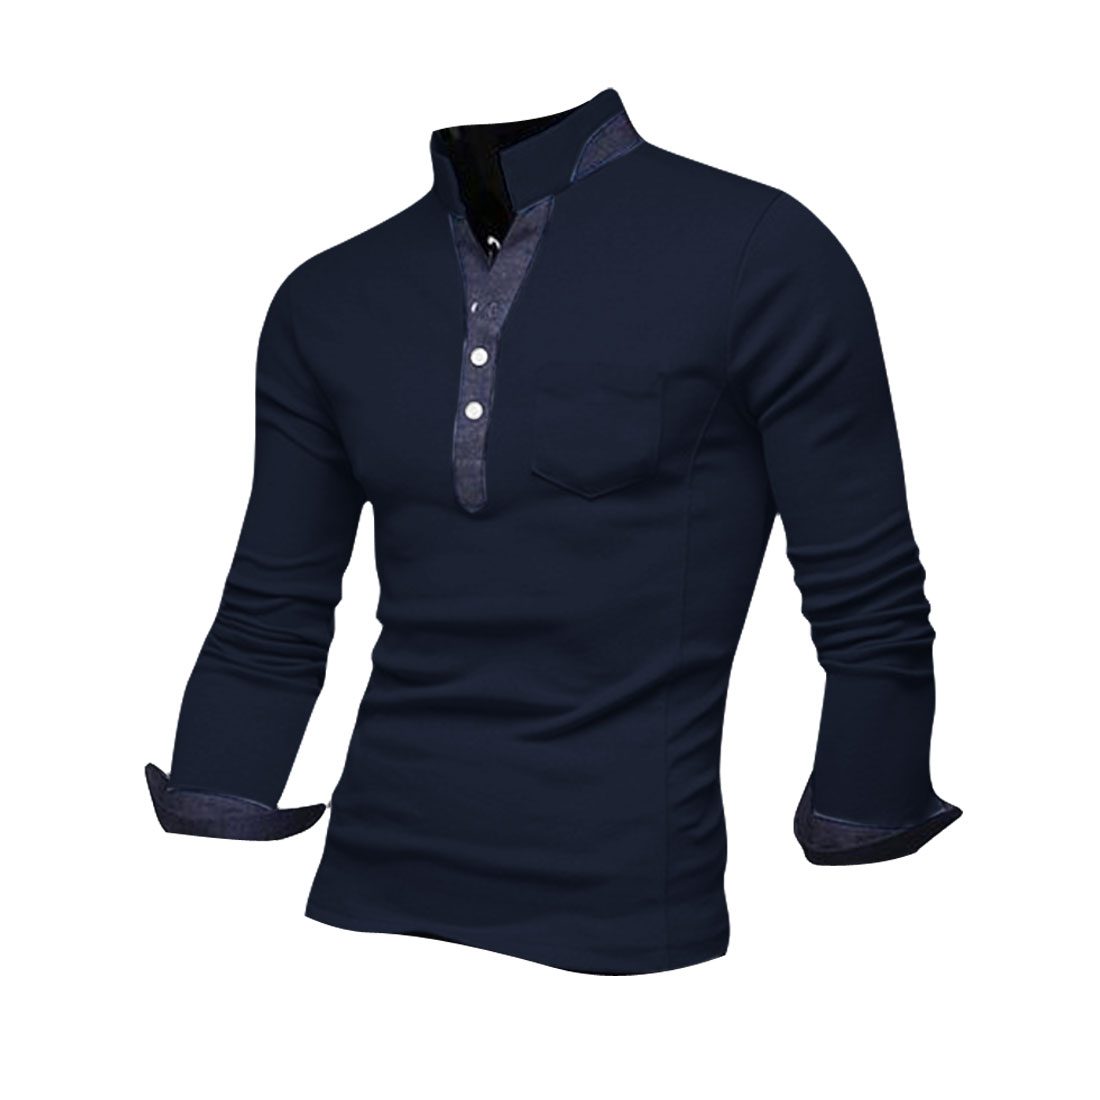 Man Chic Denim Splice Half Buttoned Front Design Dark Blue Polo Shirt M